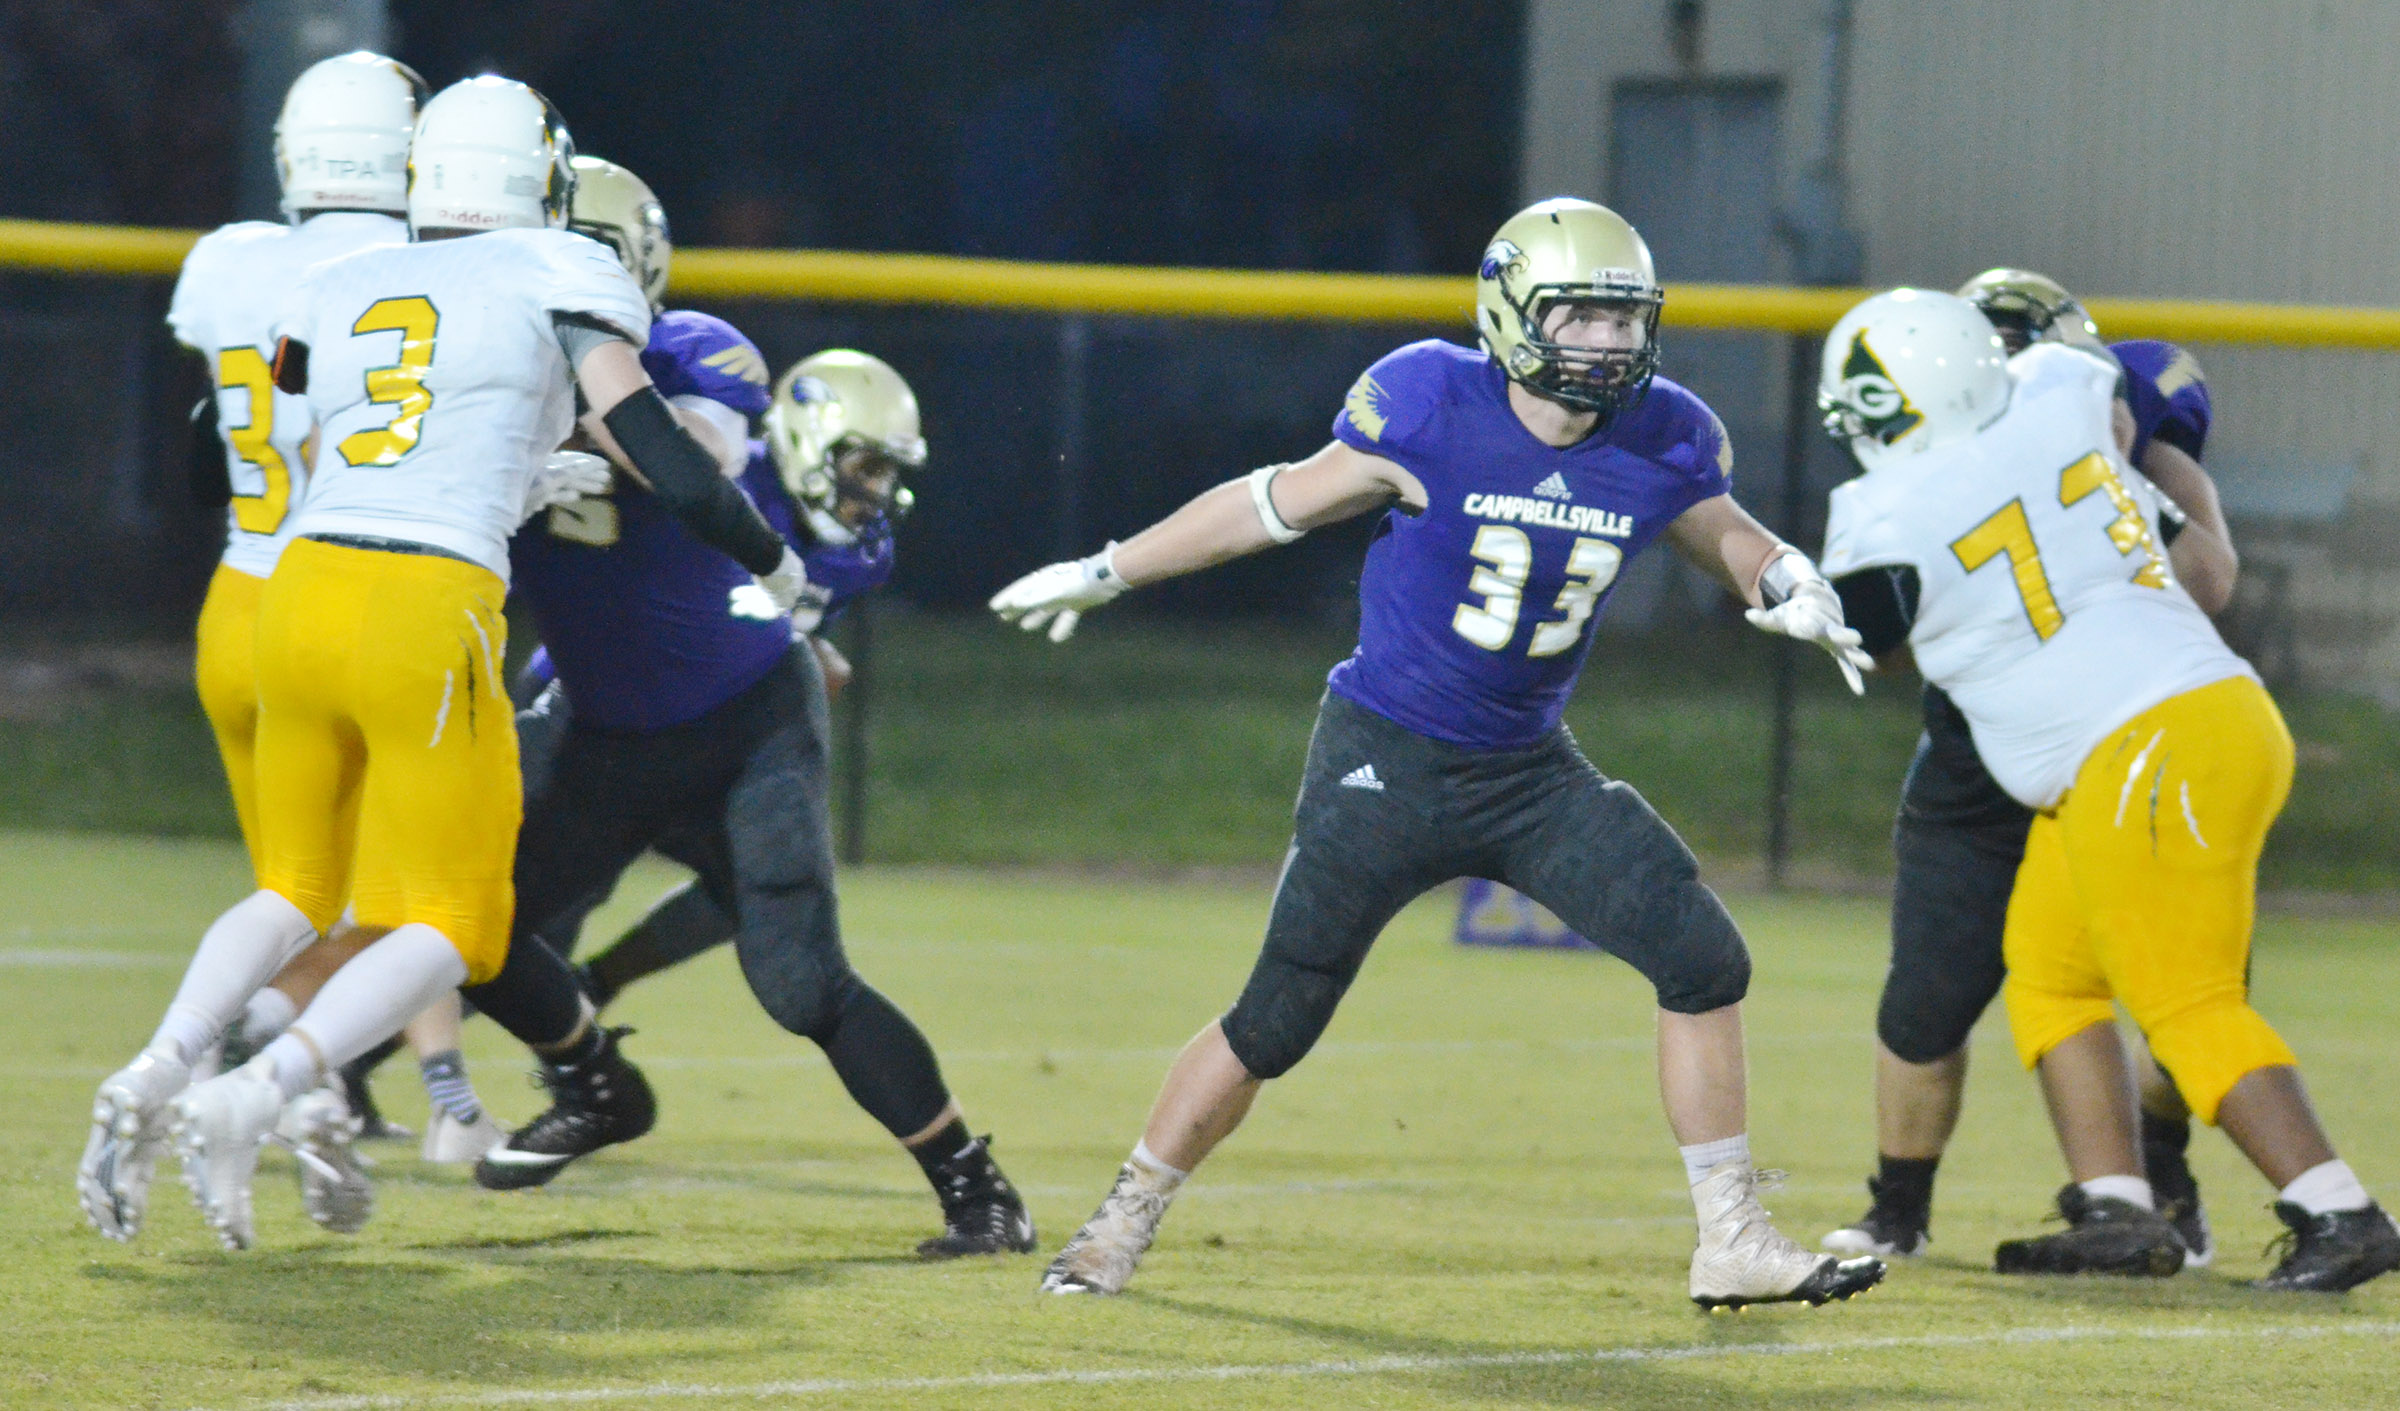 CHS junior Dakota Reardon tackles.